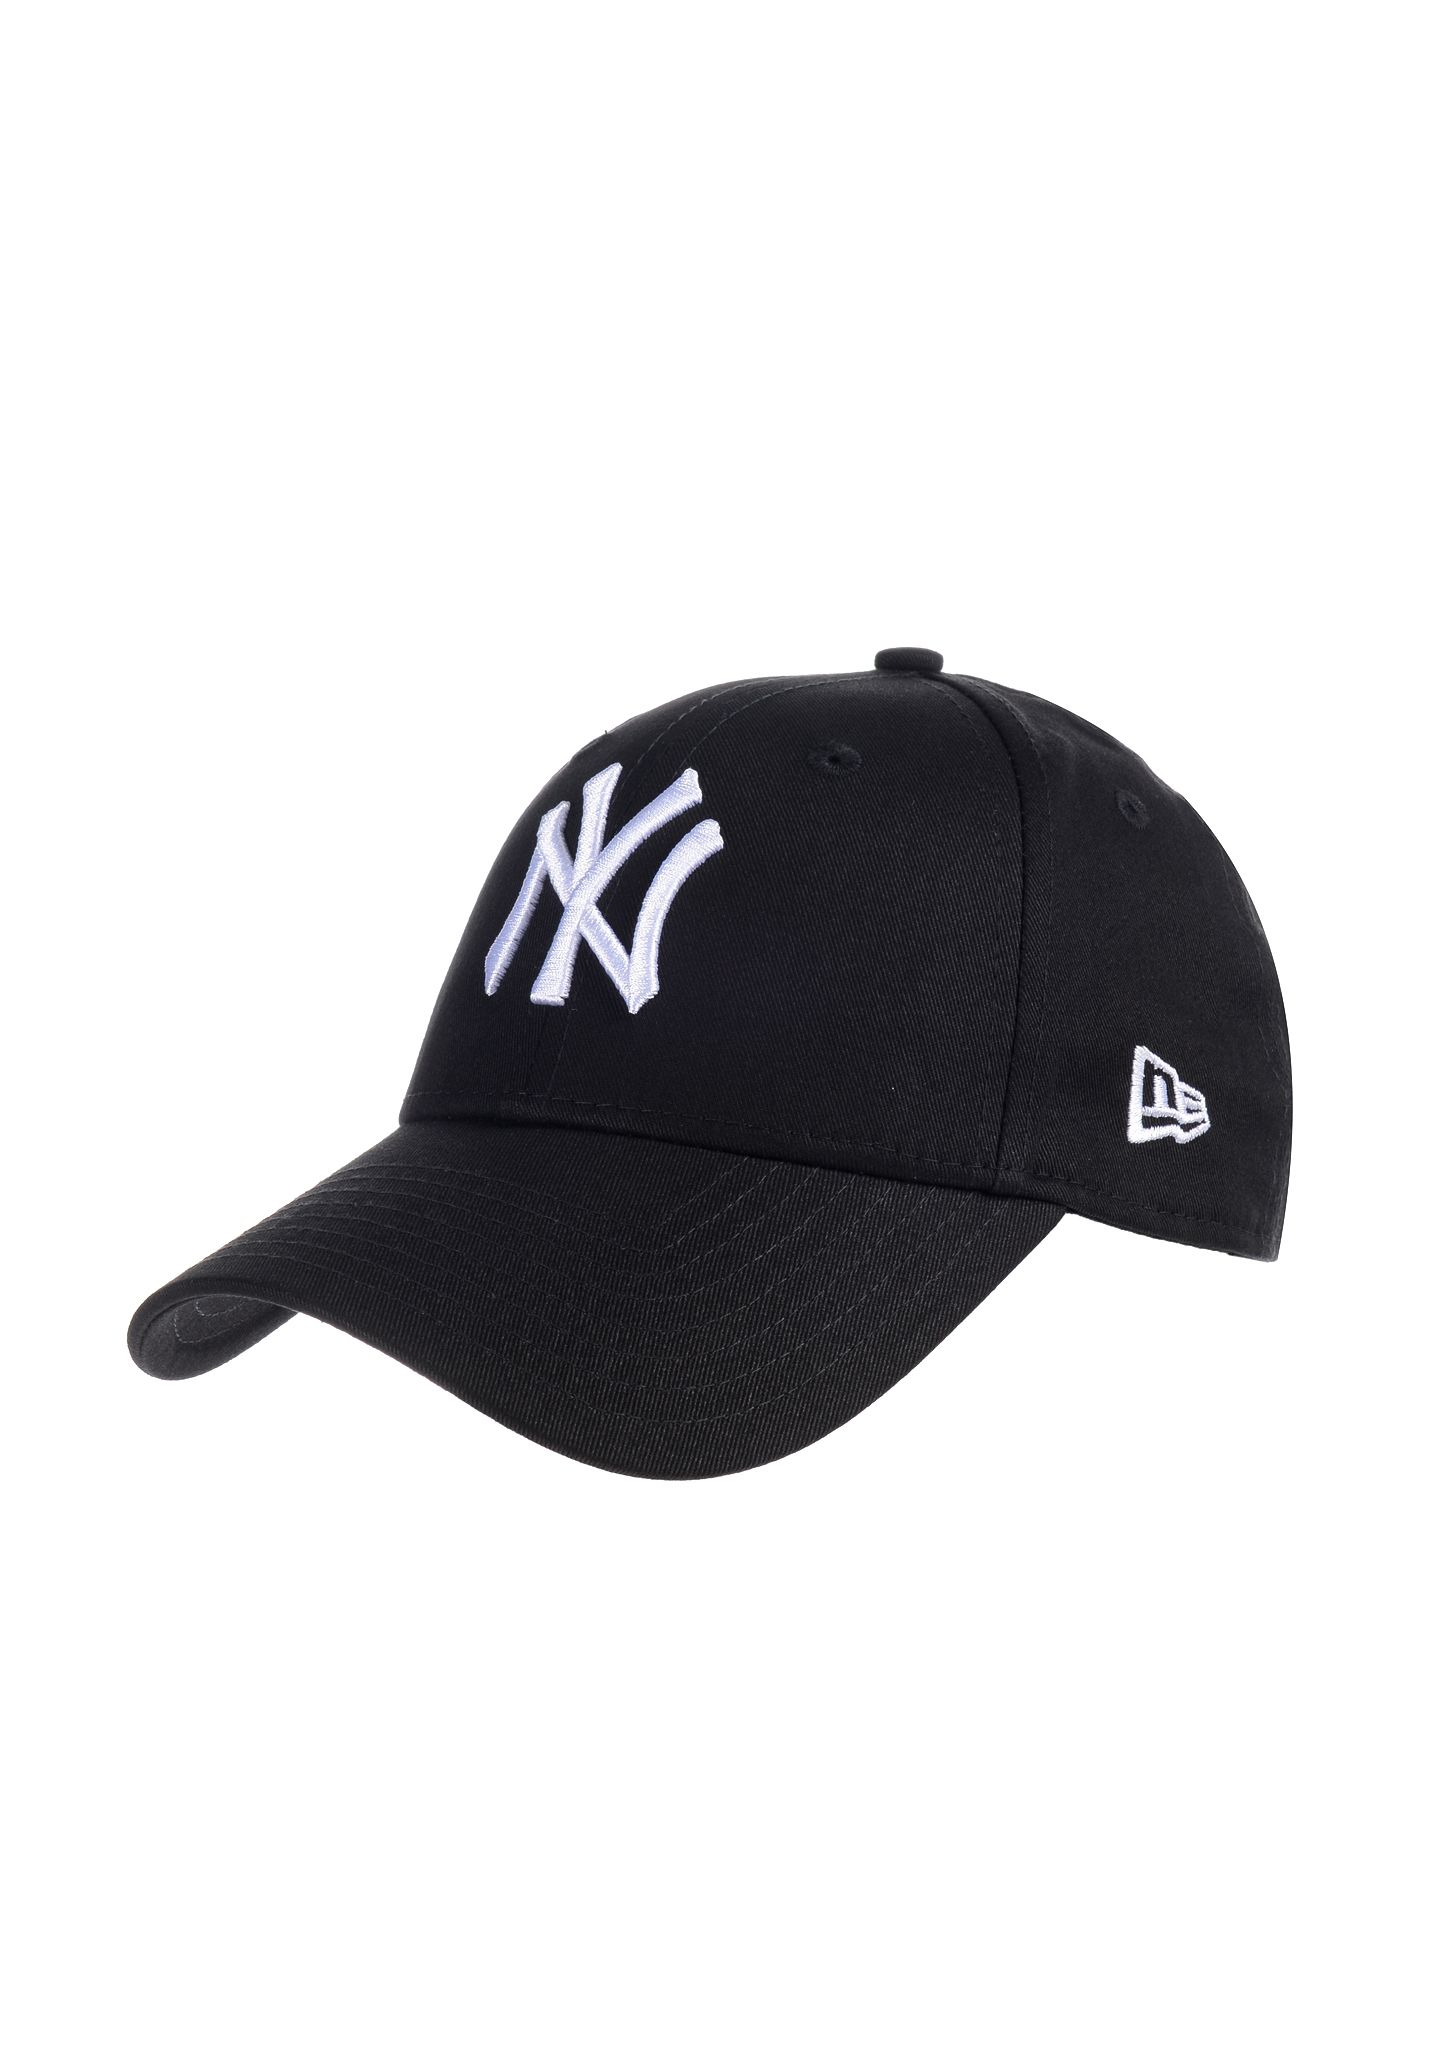 huge selection of 7a57b cde6b NEW Era 9Forty New York Yankees - Cap - Black - Planet Sports